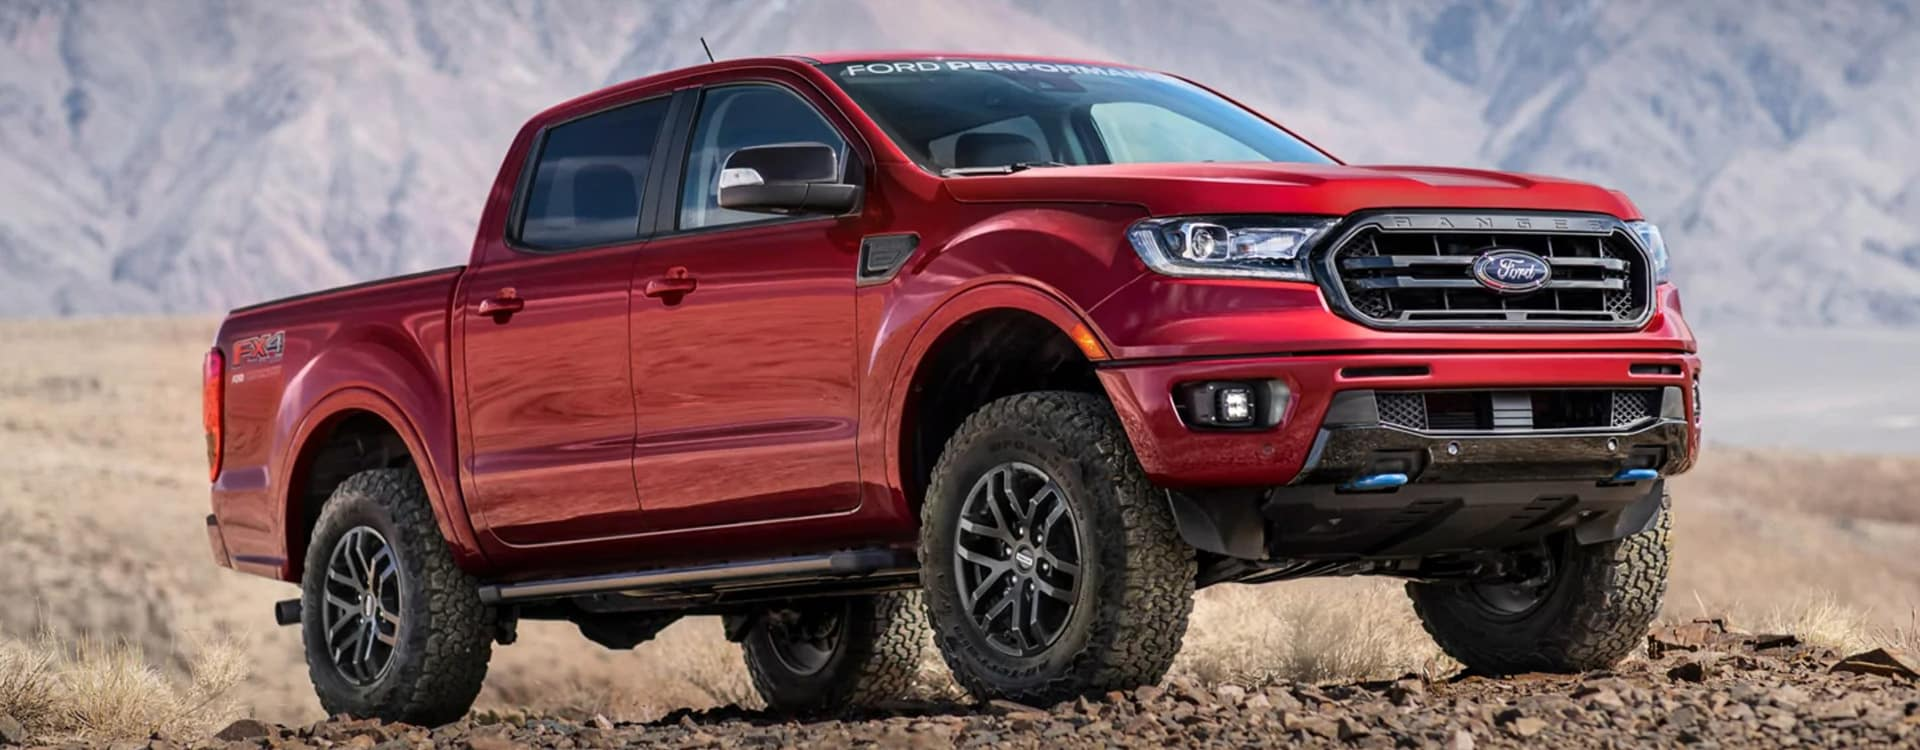 2021 Ford Ranger in St. Louis